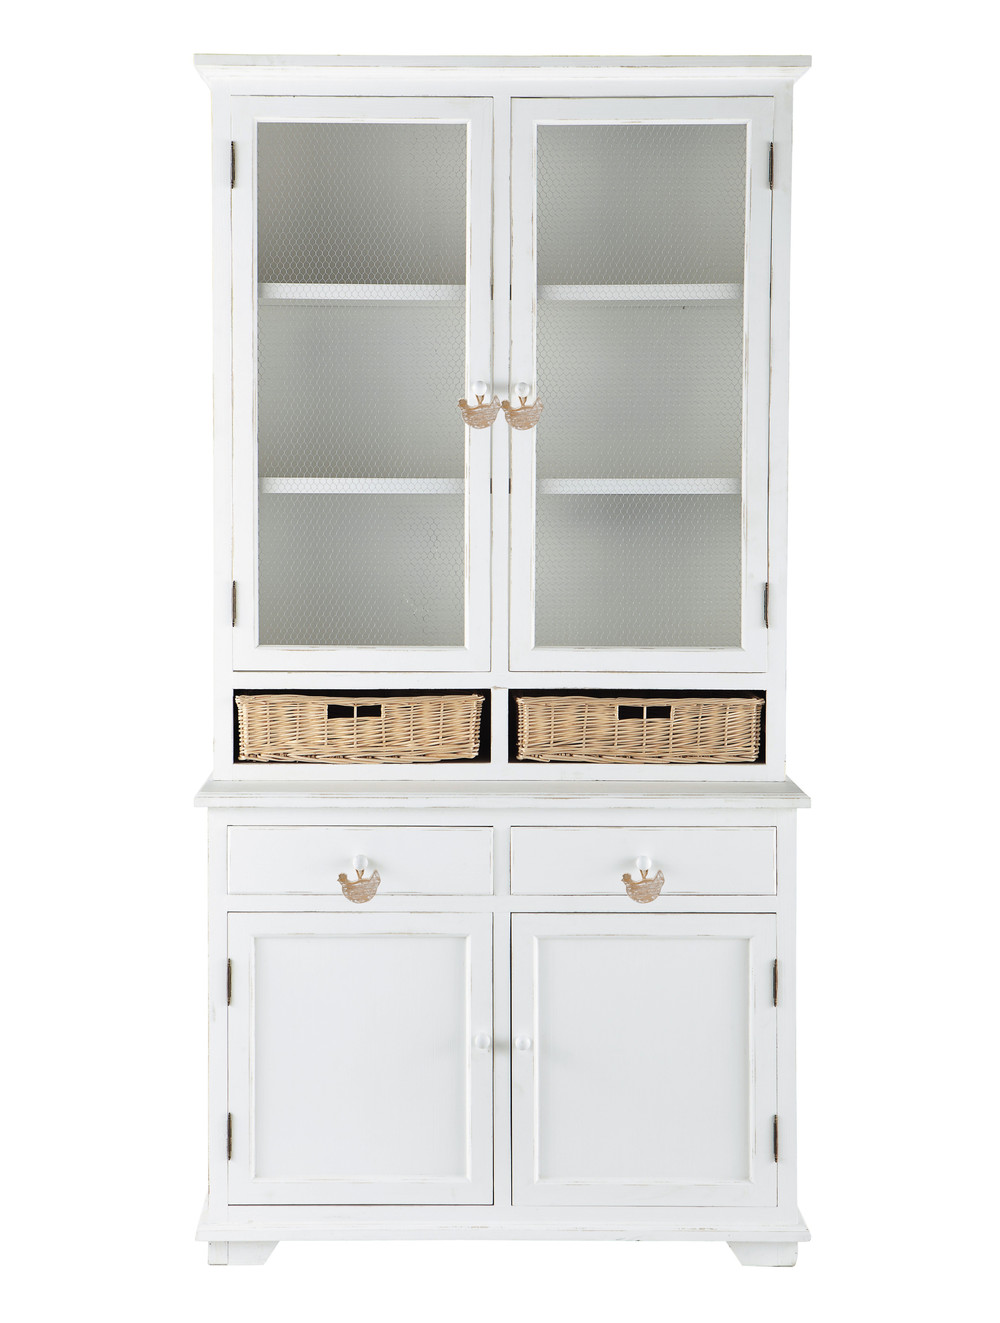 vaisselier en bois de paulownia blanc l 110 cm basse cour maisons du monde. Black Bedroom Furniture Sets. Home Design Ideas